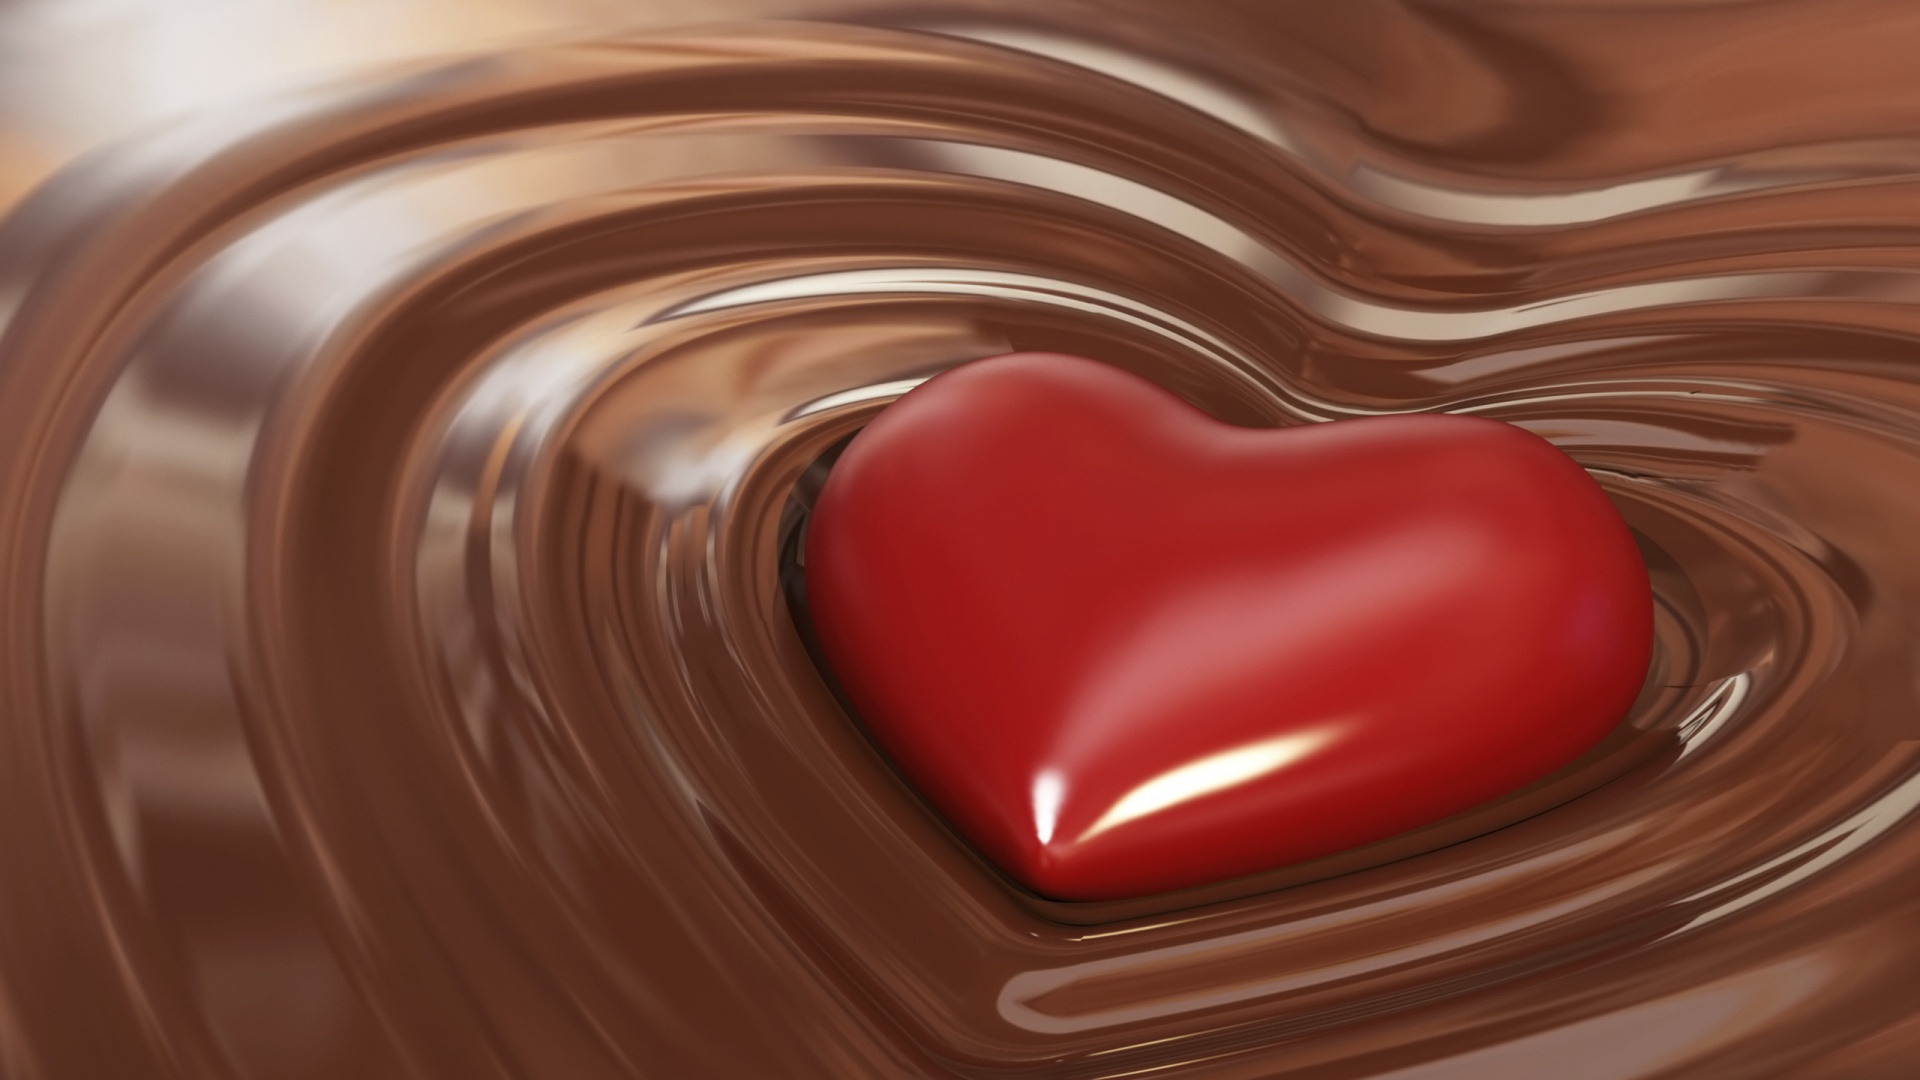 Heart in Chocolate